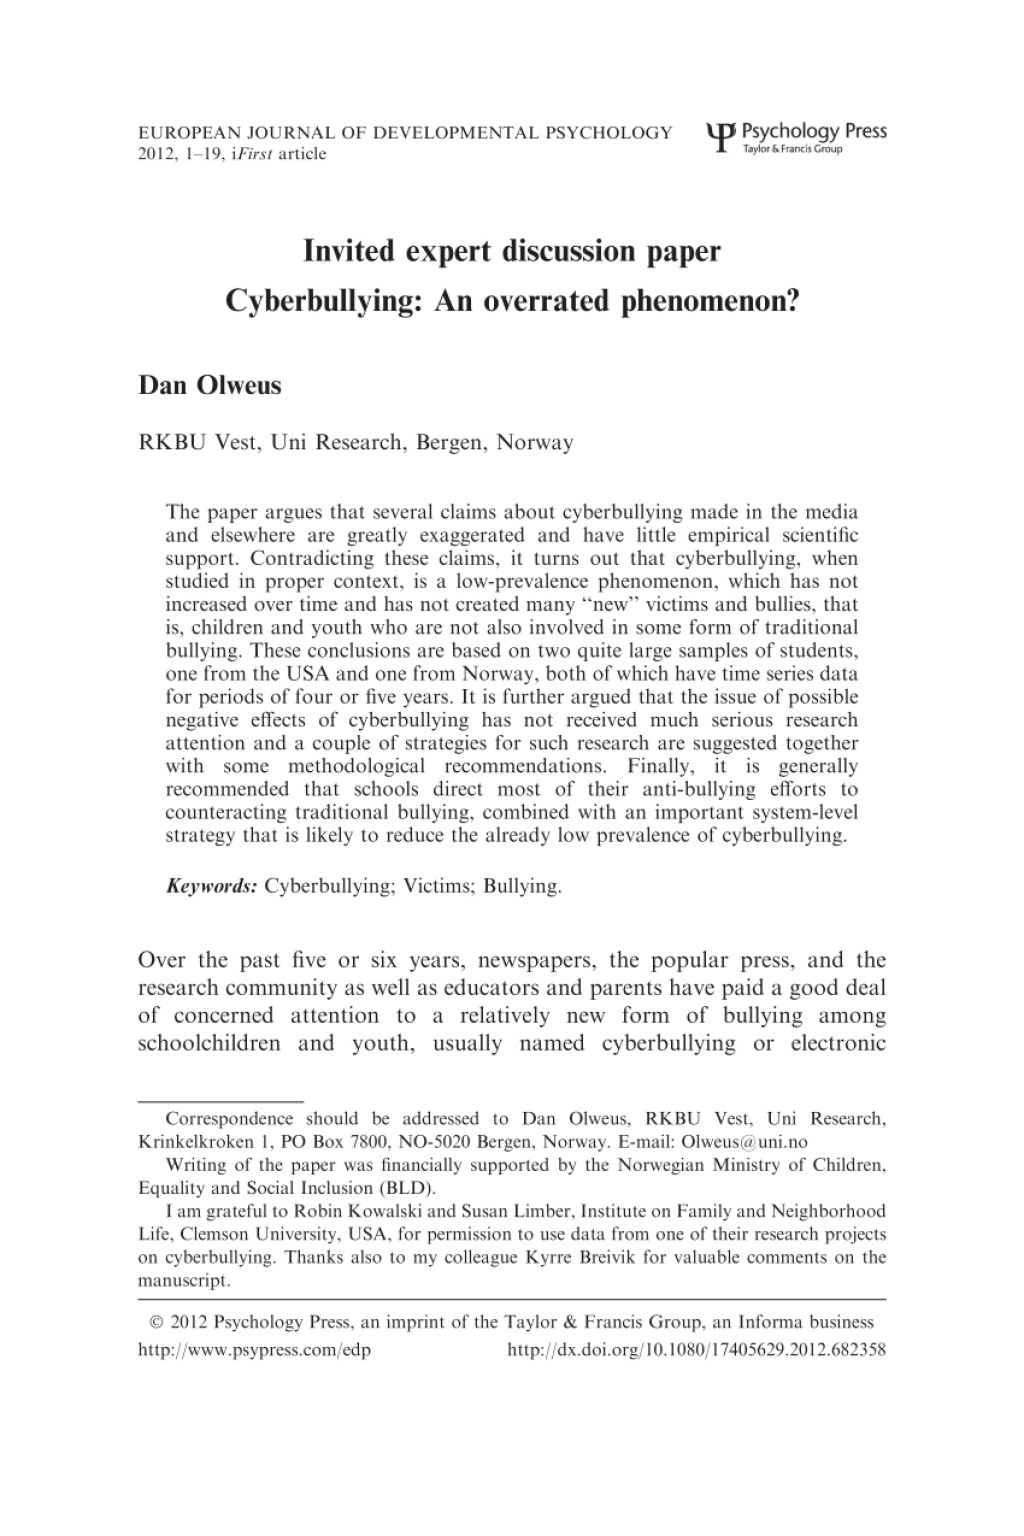 004 Cyberbullying Research Paper Conclusion Rare Large